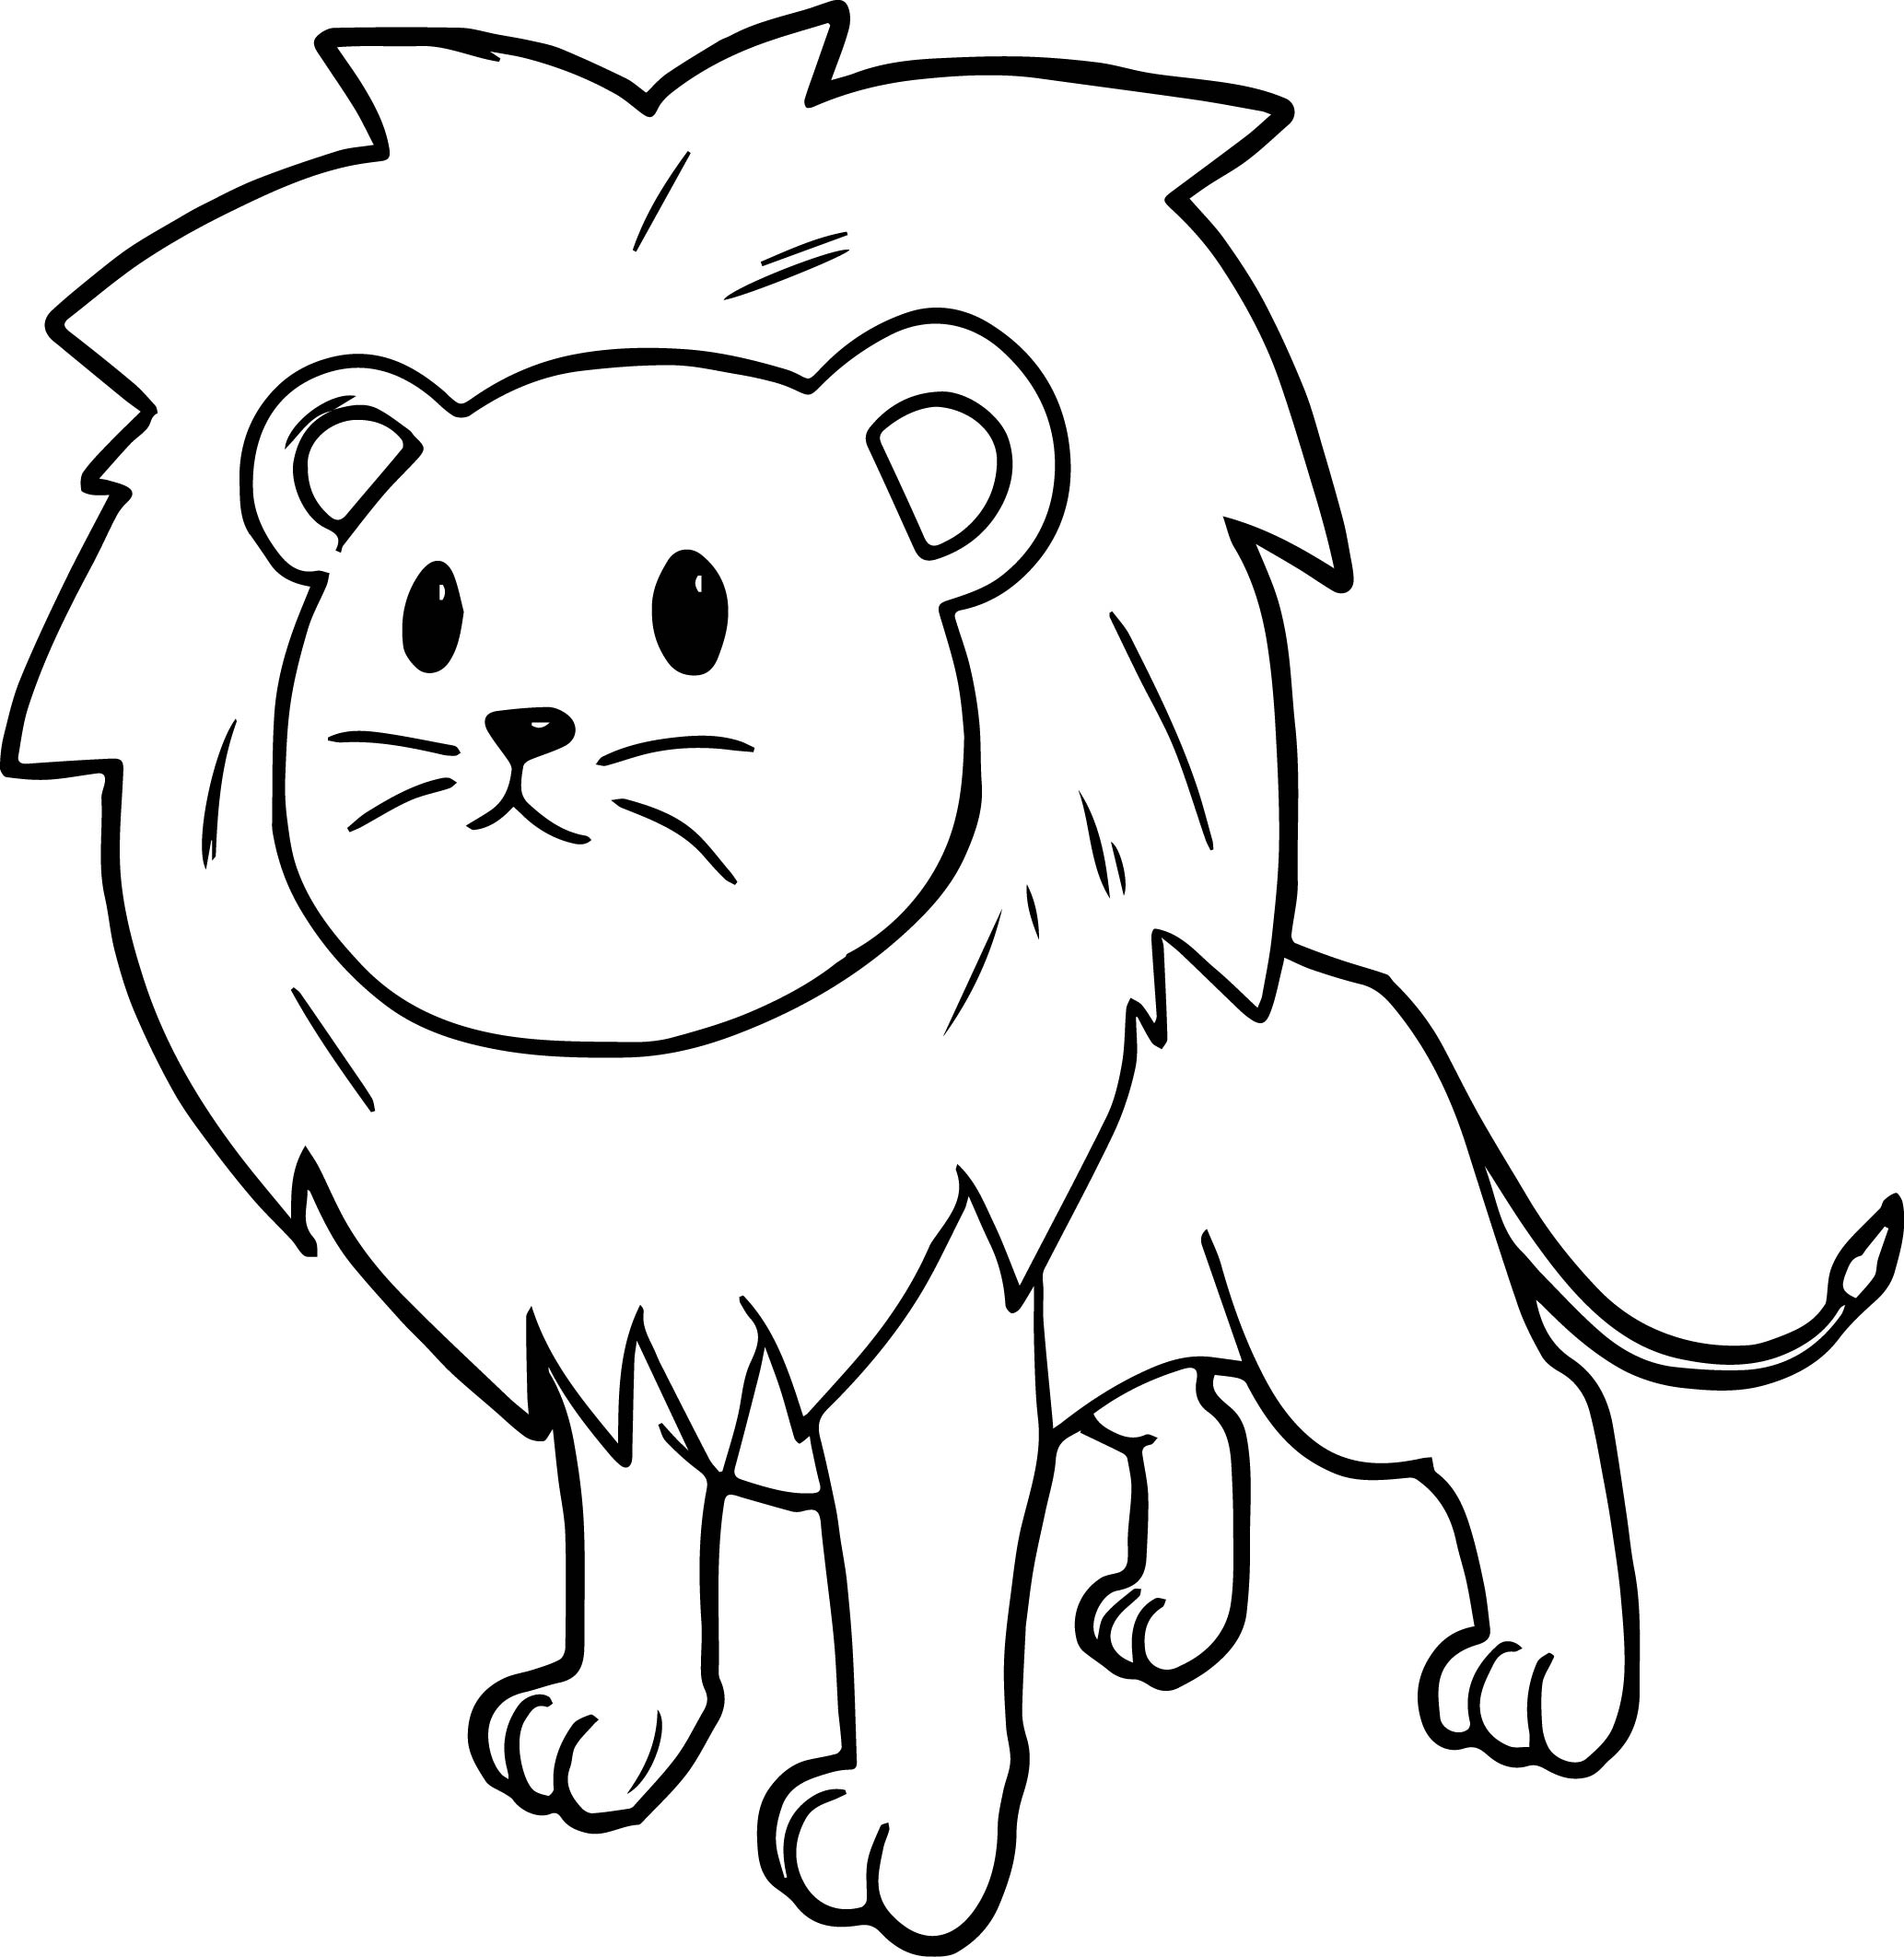 Coloring pages lion - Cute Cartoon Comic Lion Coloring Page